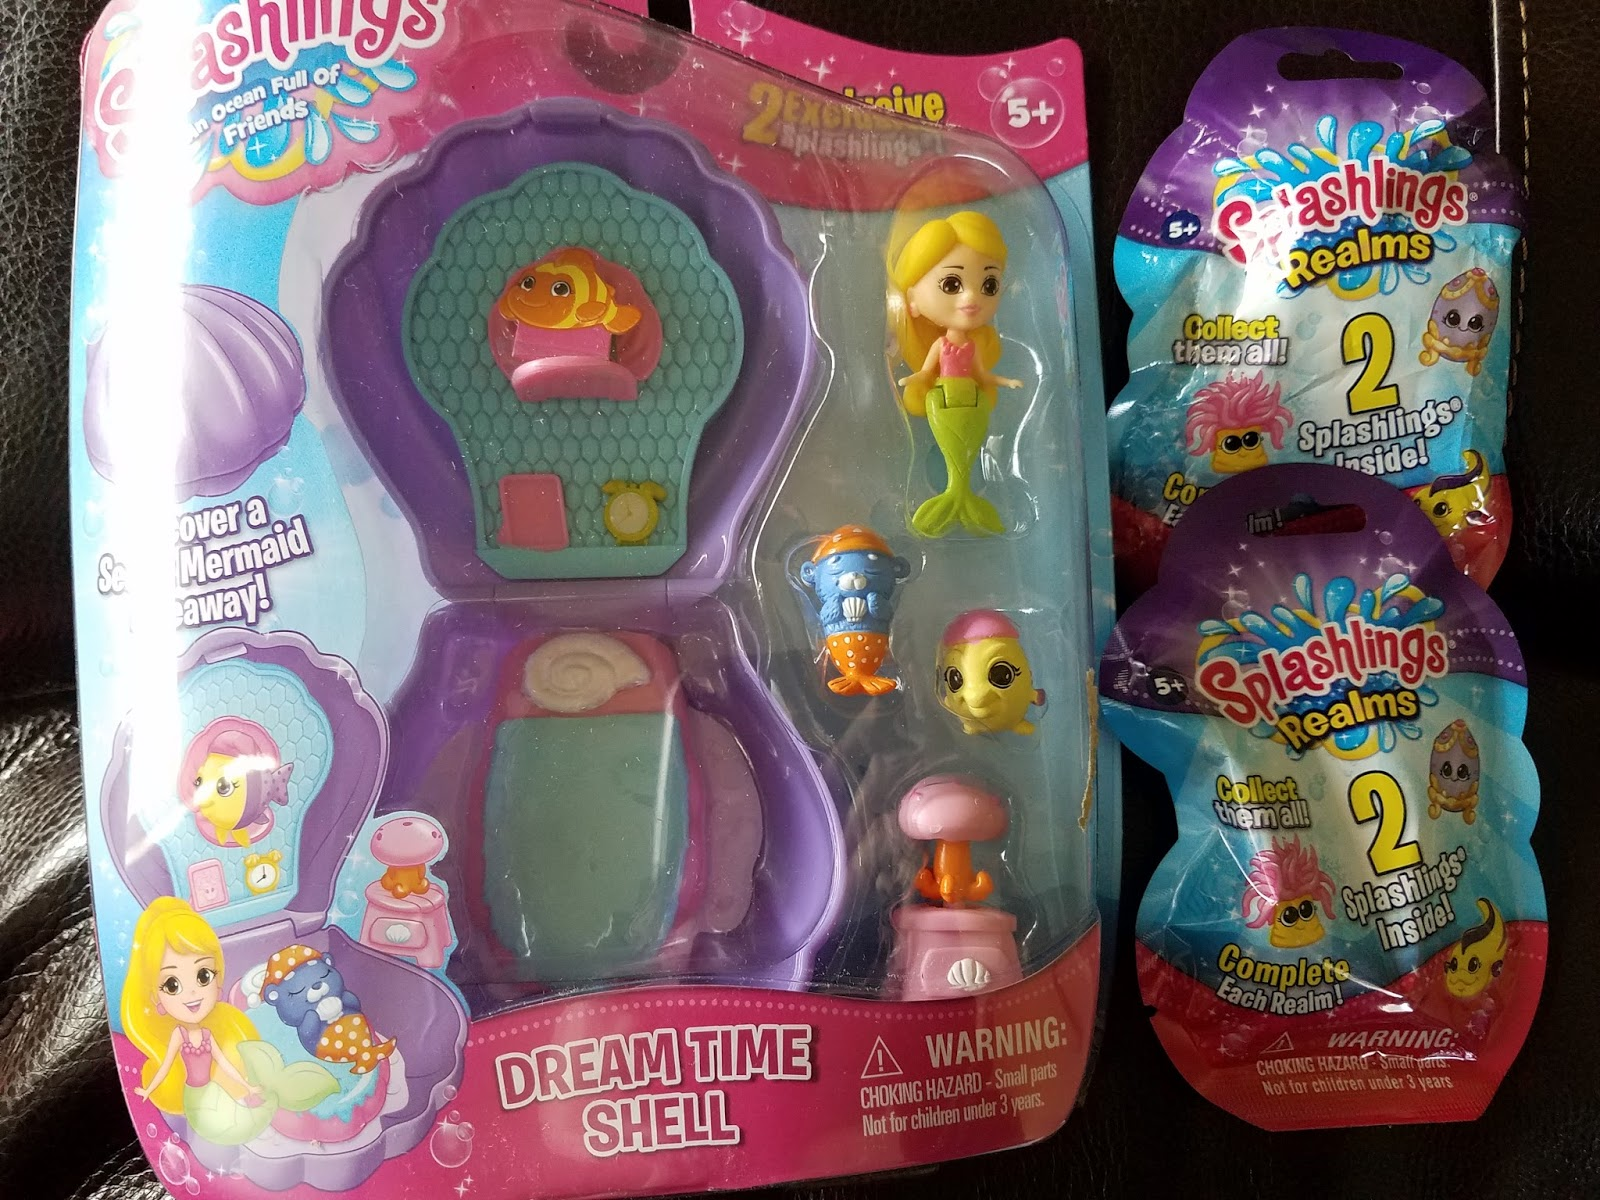 The abcd diaries splashlings adorable easter basket stuffers spon splashlings adorable easter basket stuffers spon negle Images